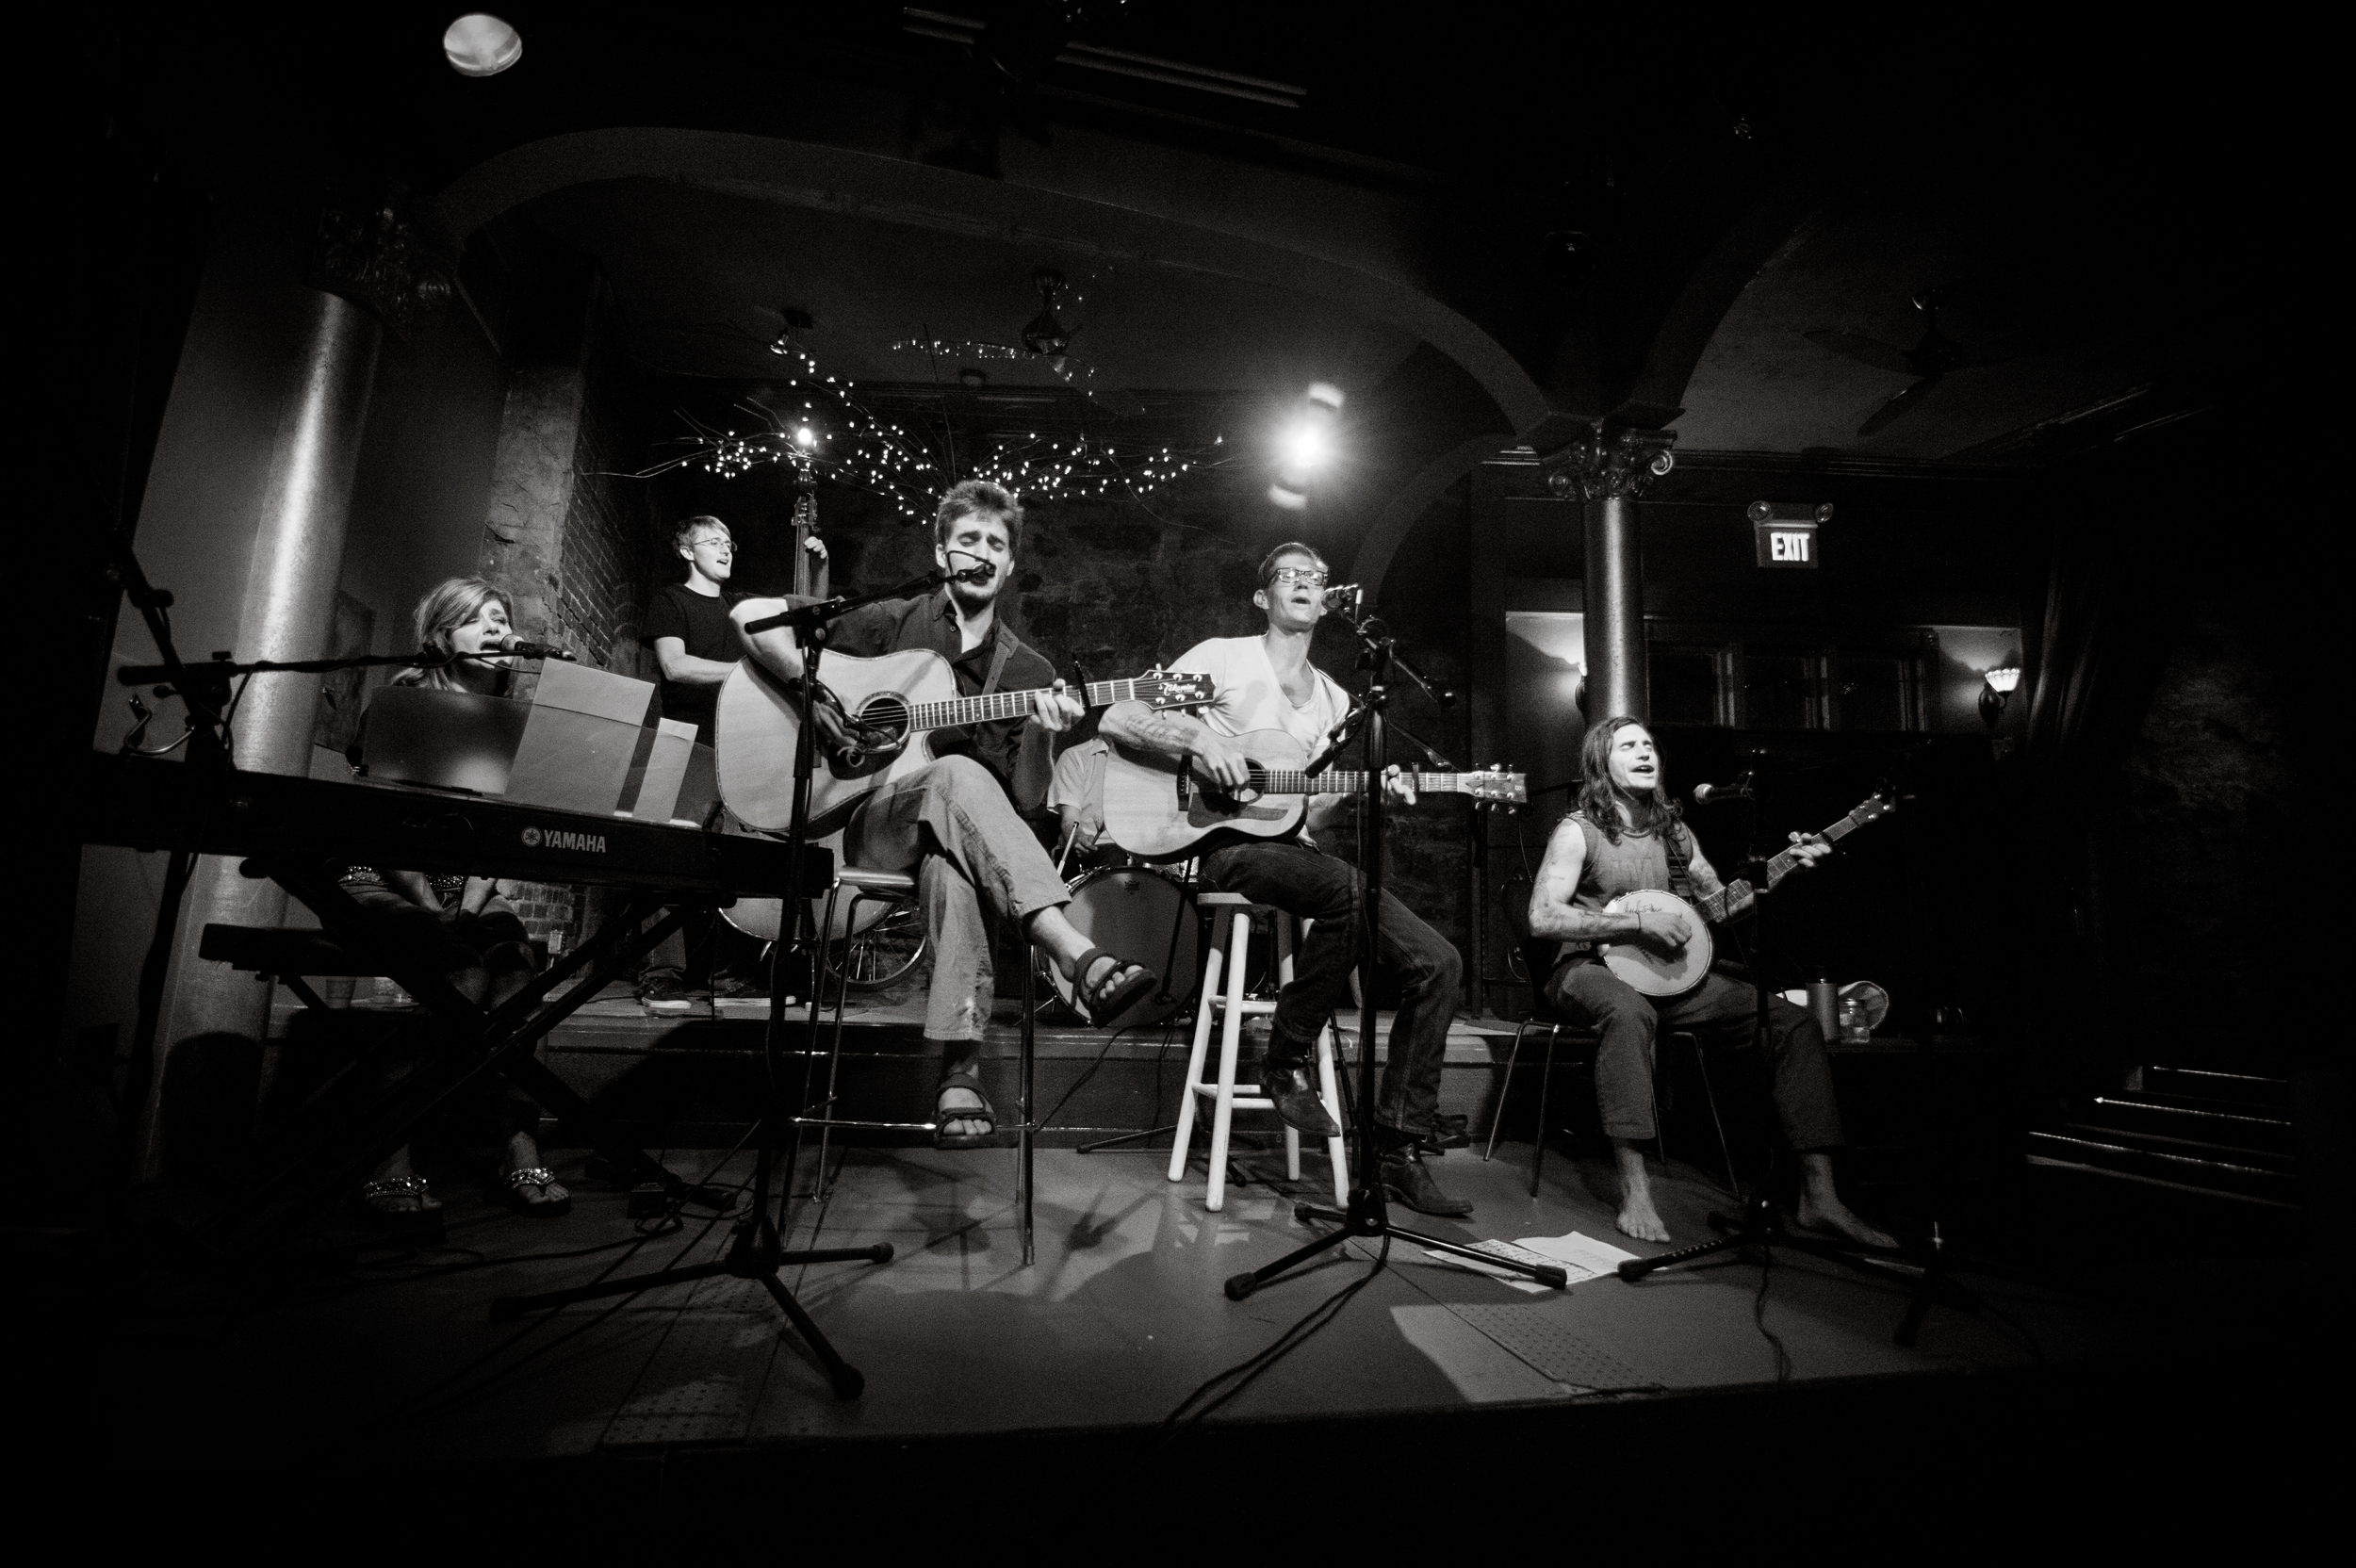 Jacob (far right) playing with his mother, Robin (far left); brother, Jordan (second from left); and fellow musician, Adam Cox (second from right).